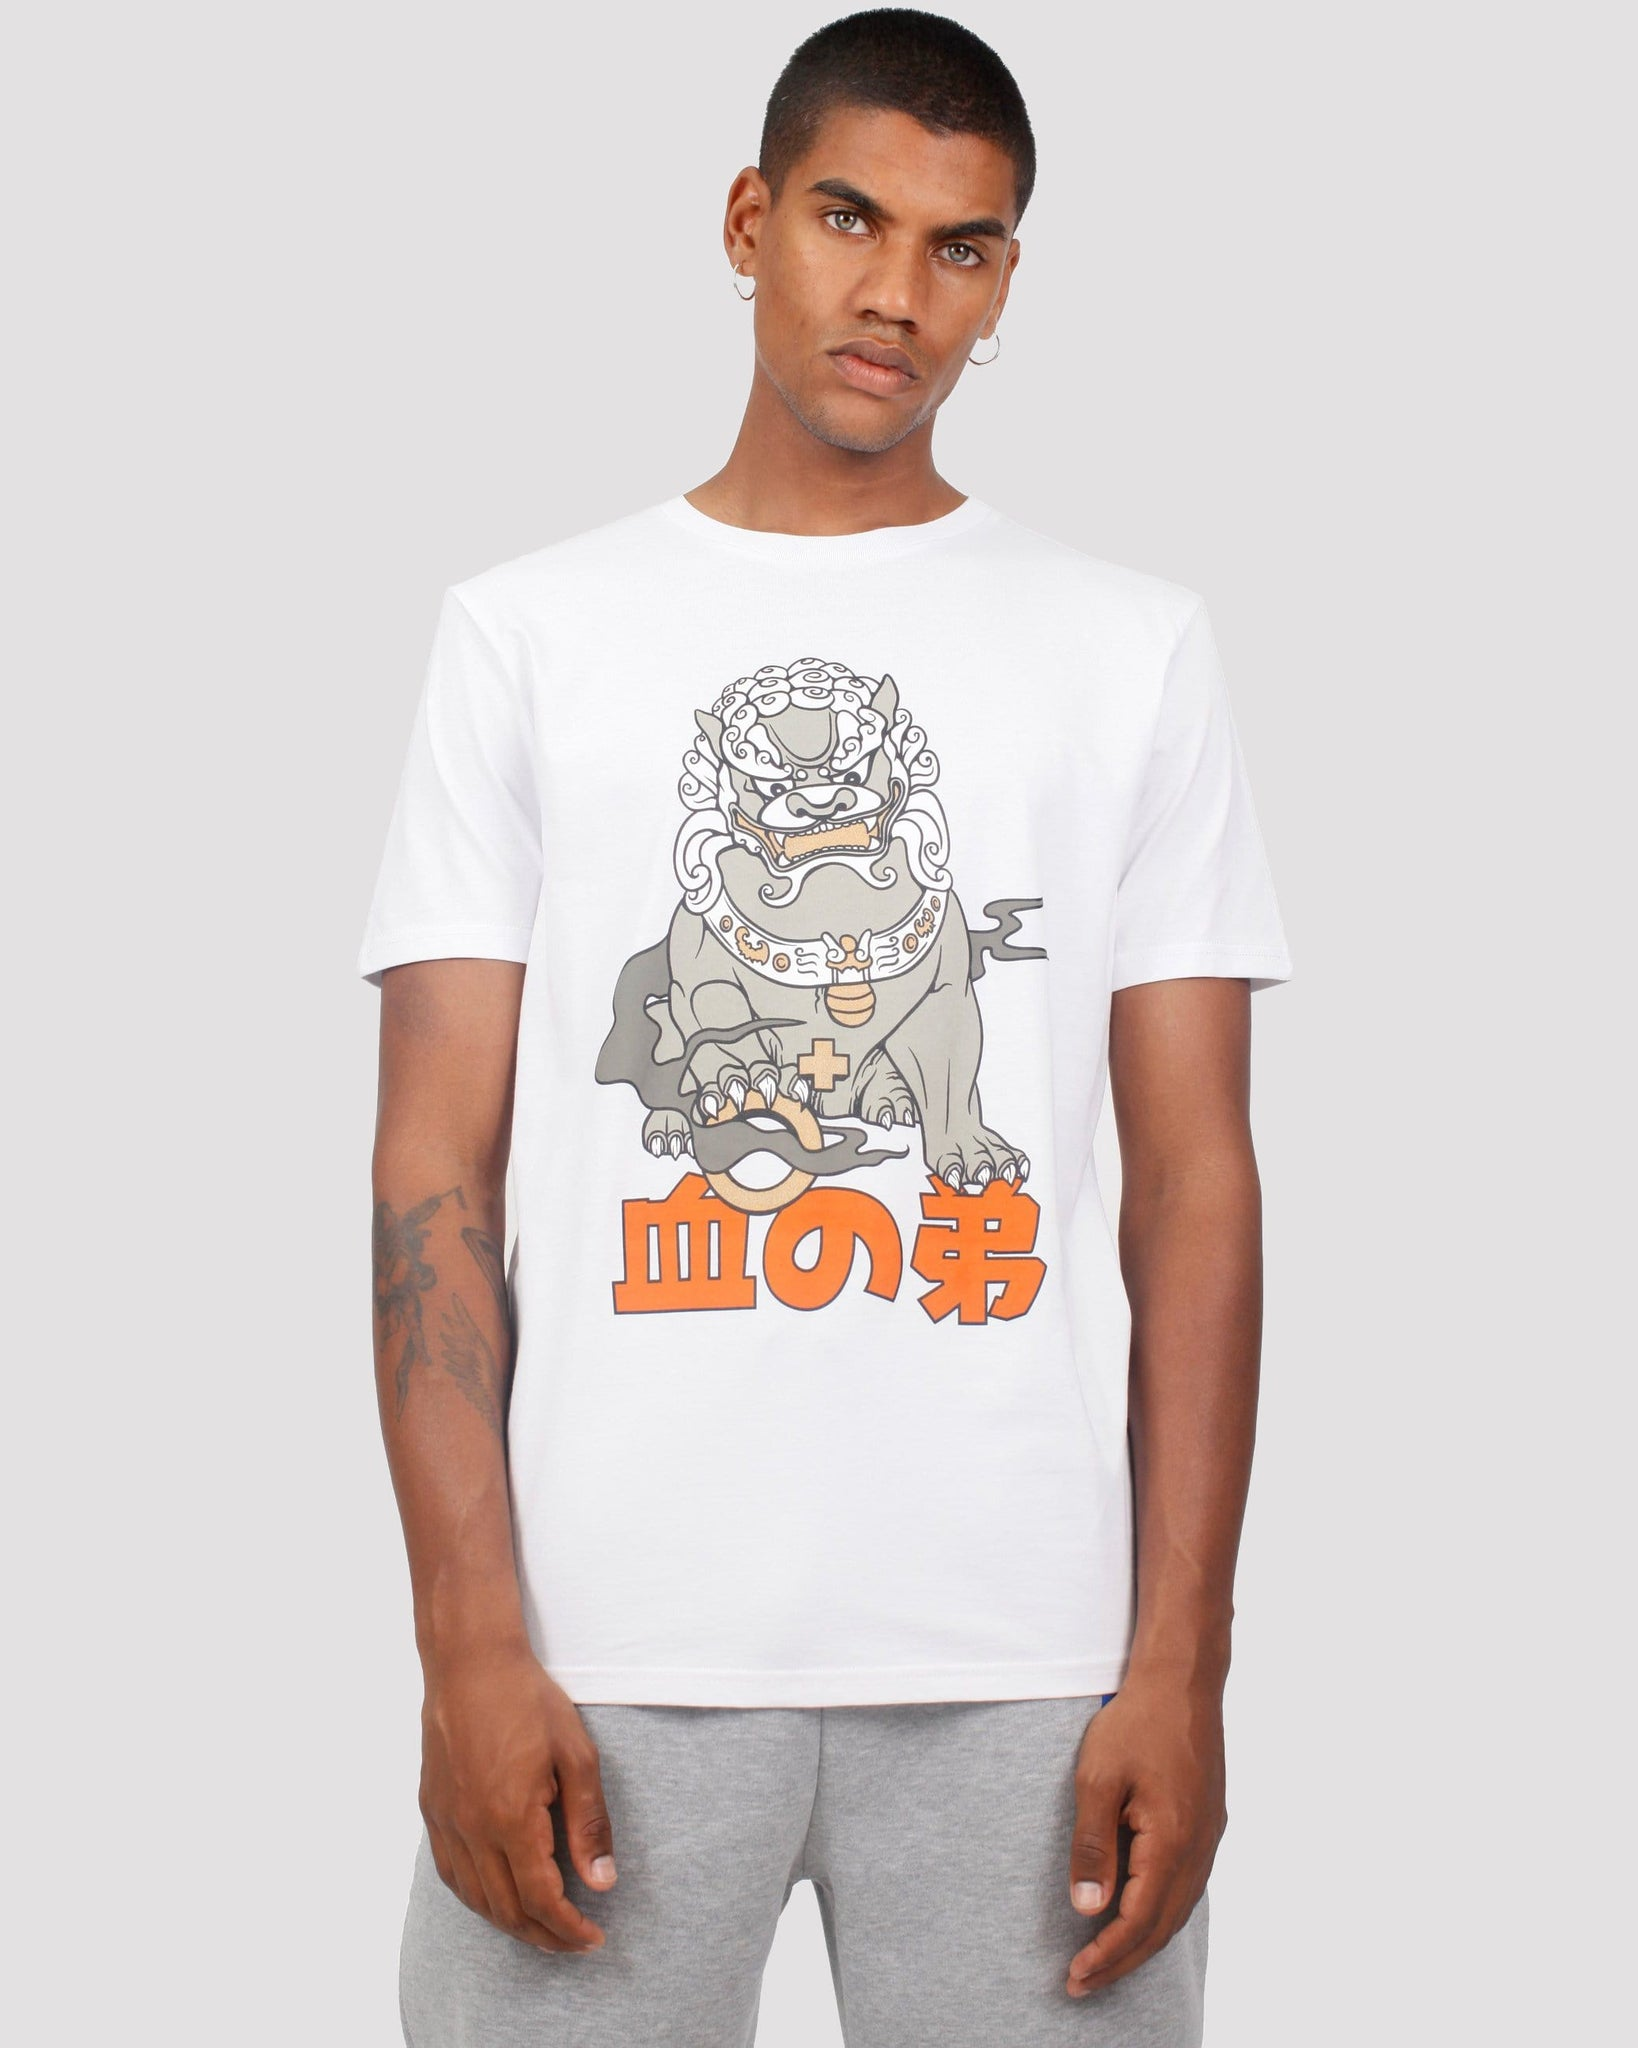 Onigawara Printed T-Shirt in White